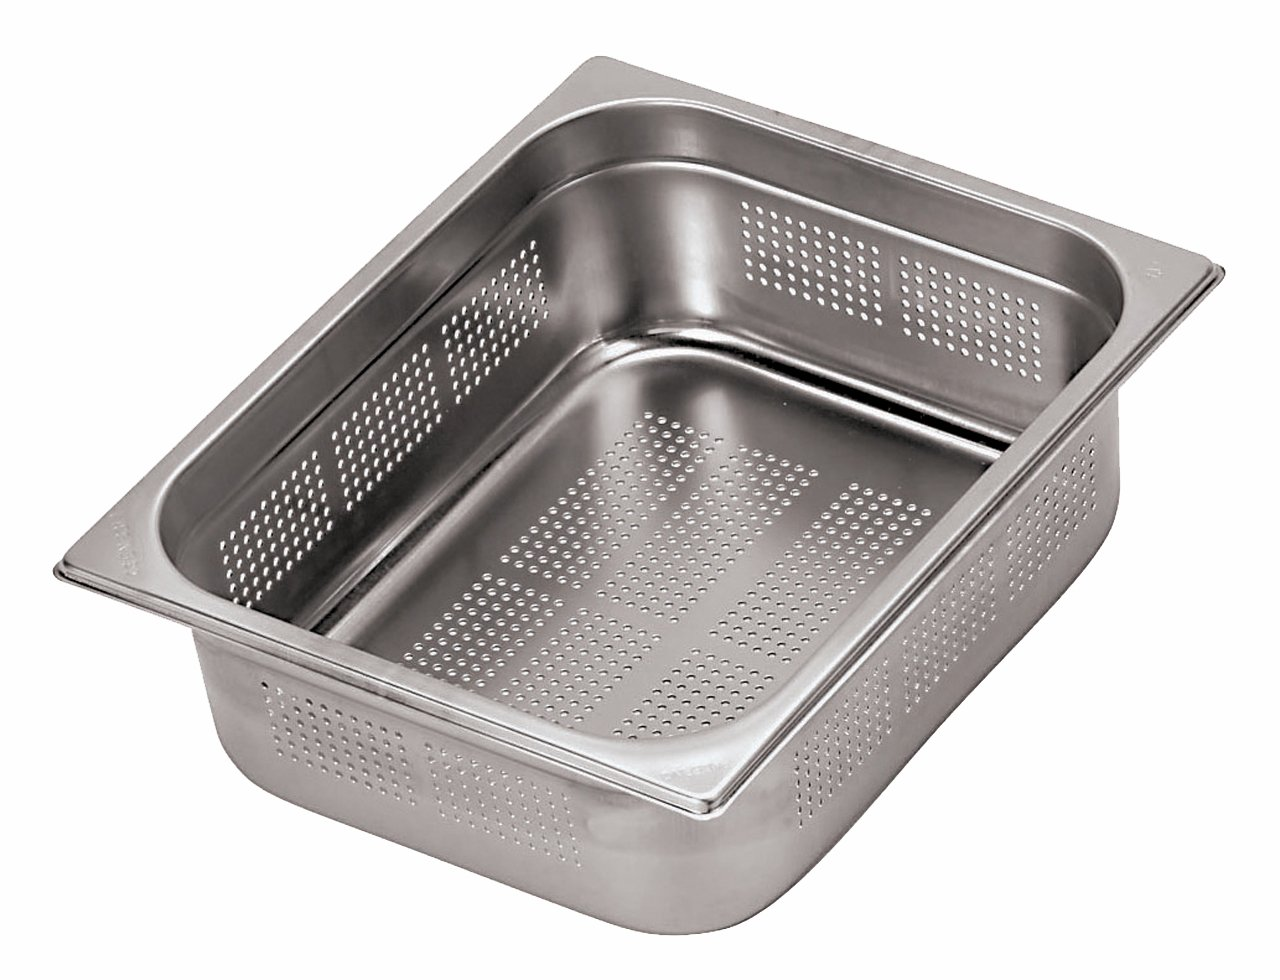 Paderno World Cuisine 25 1 / 2インチby 20 7 / 8インチstainless-steel Perforatedホテルパン – 2 / 1 (奥行: 7 7 / 8インチ B003KYS9EM